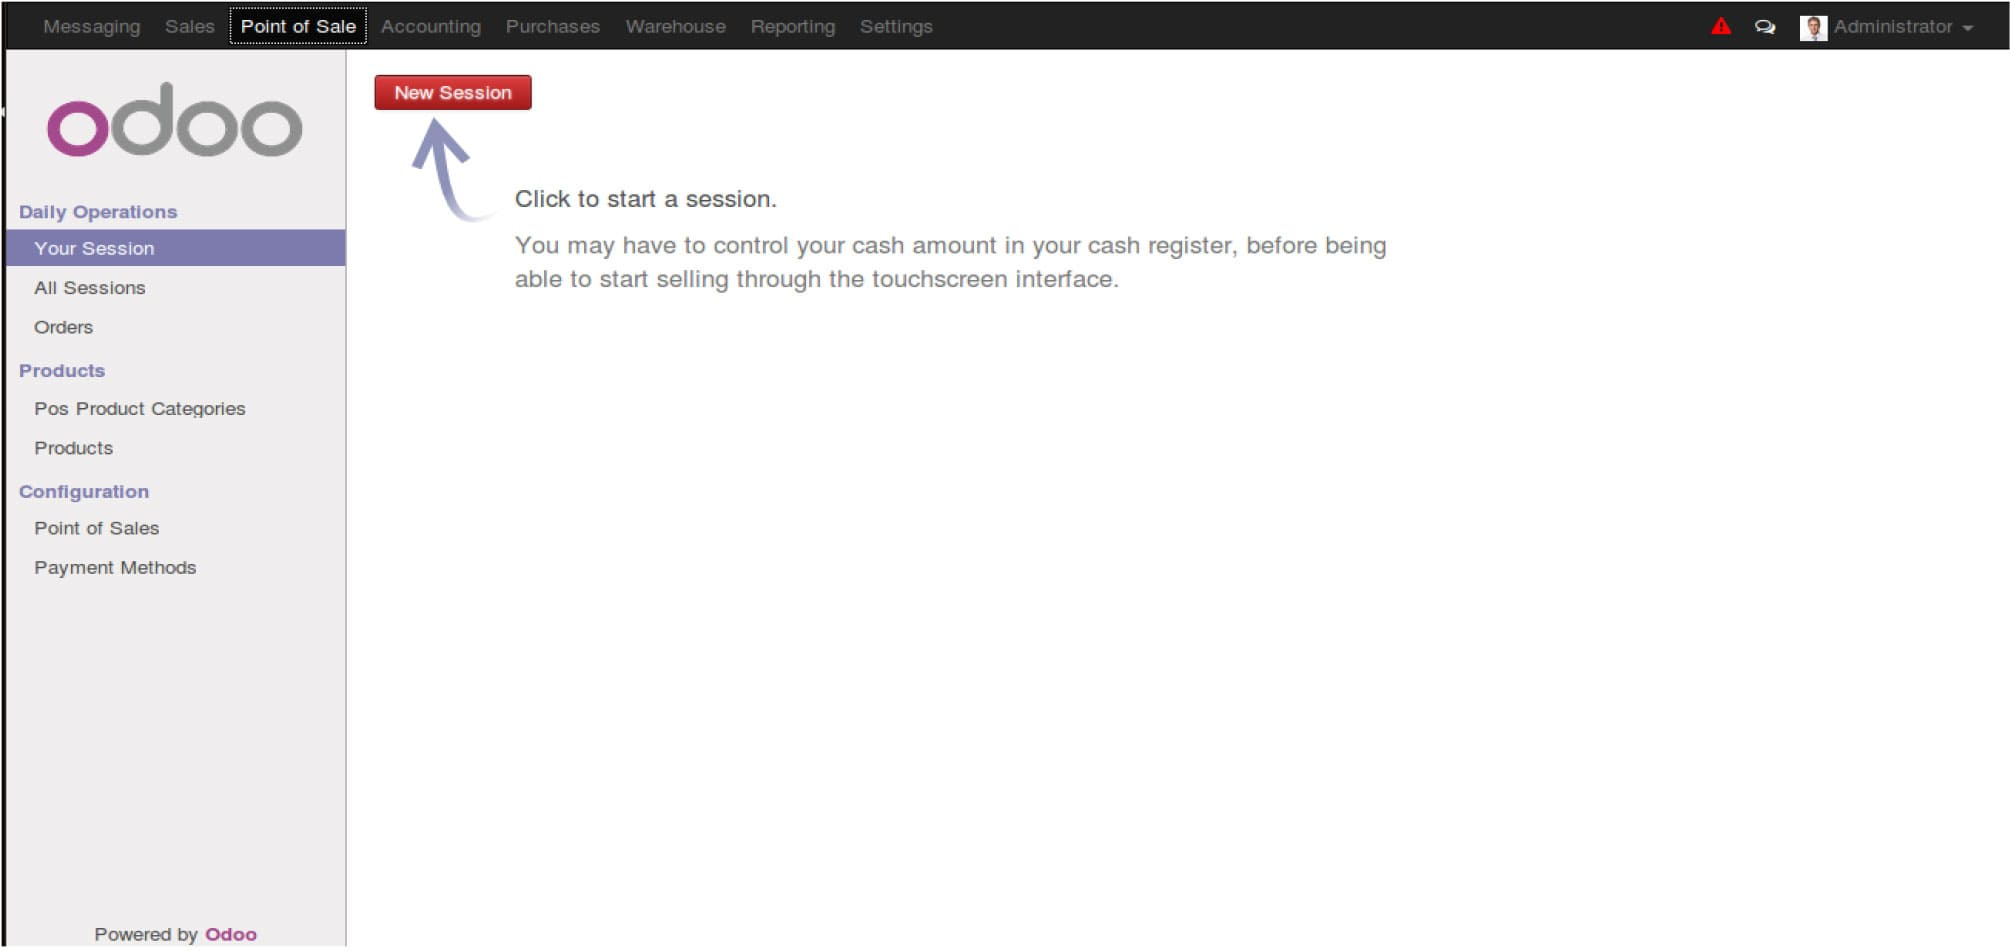 https/blog/Uploads/BlogImage/debt-notebook-8.jpg